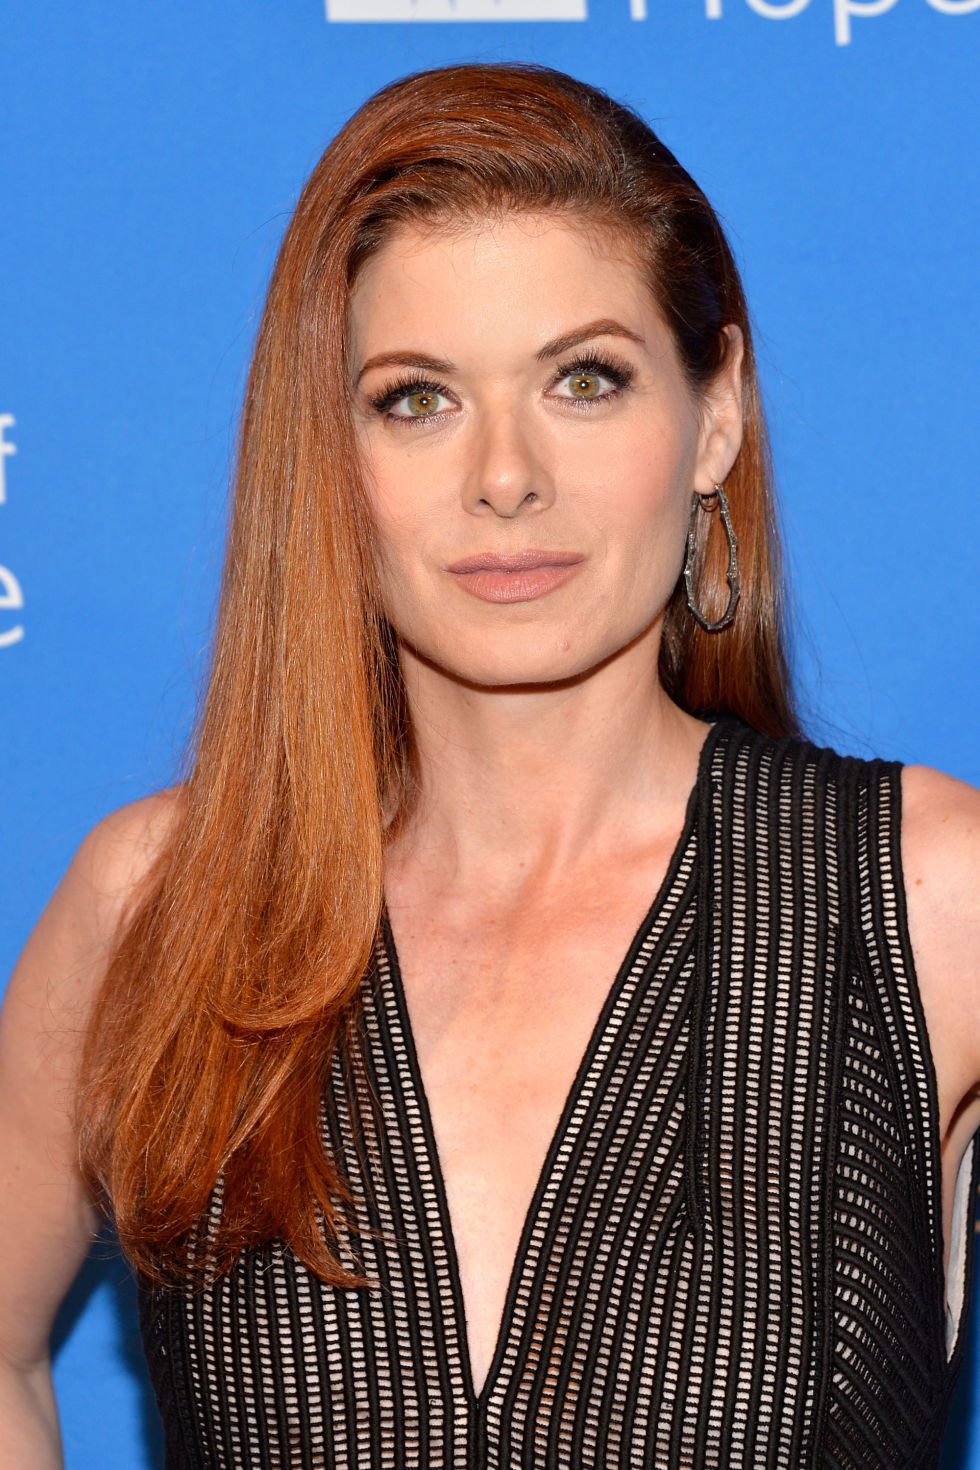 Image Gallary 3: debra messing hot pics,sexy pictures